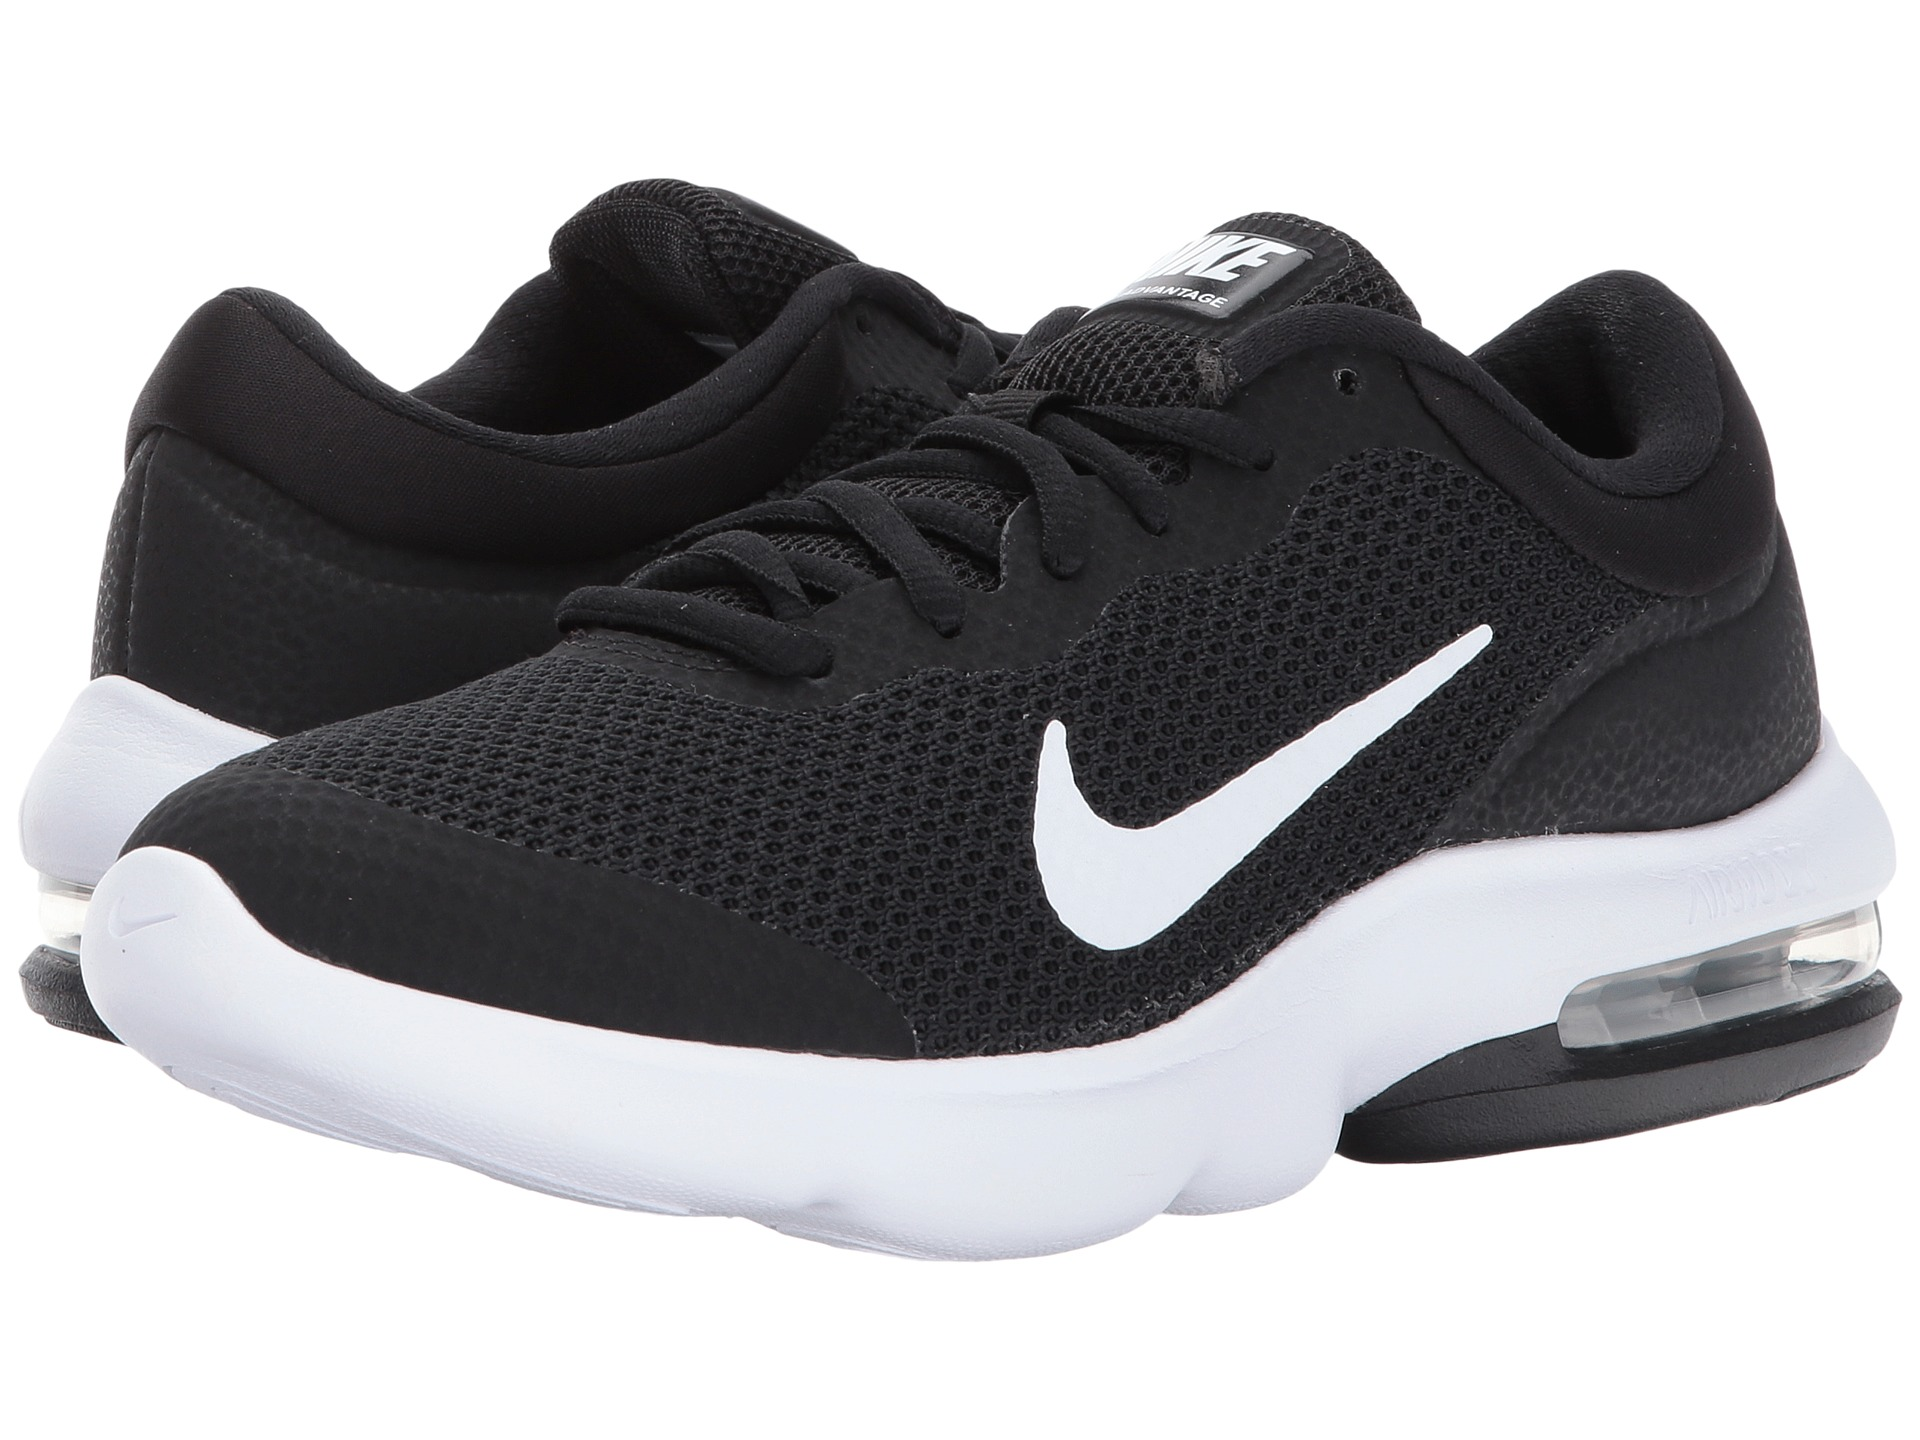 Nike Air Max Fierce Nike Air Max Fierce Reviews - Musée des ... a7b49c9062c7